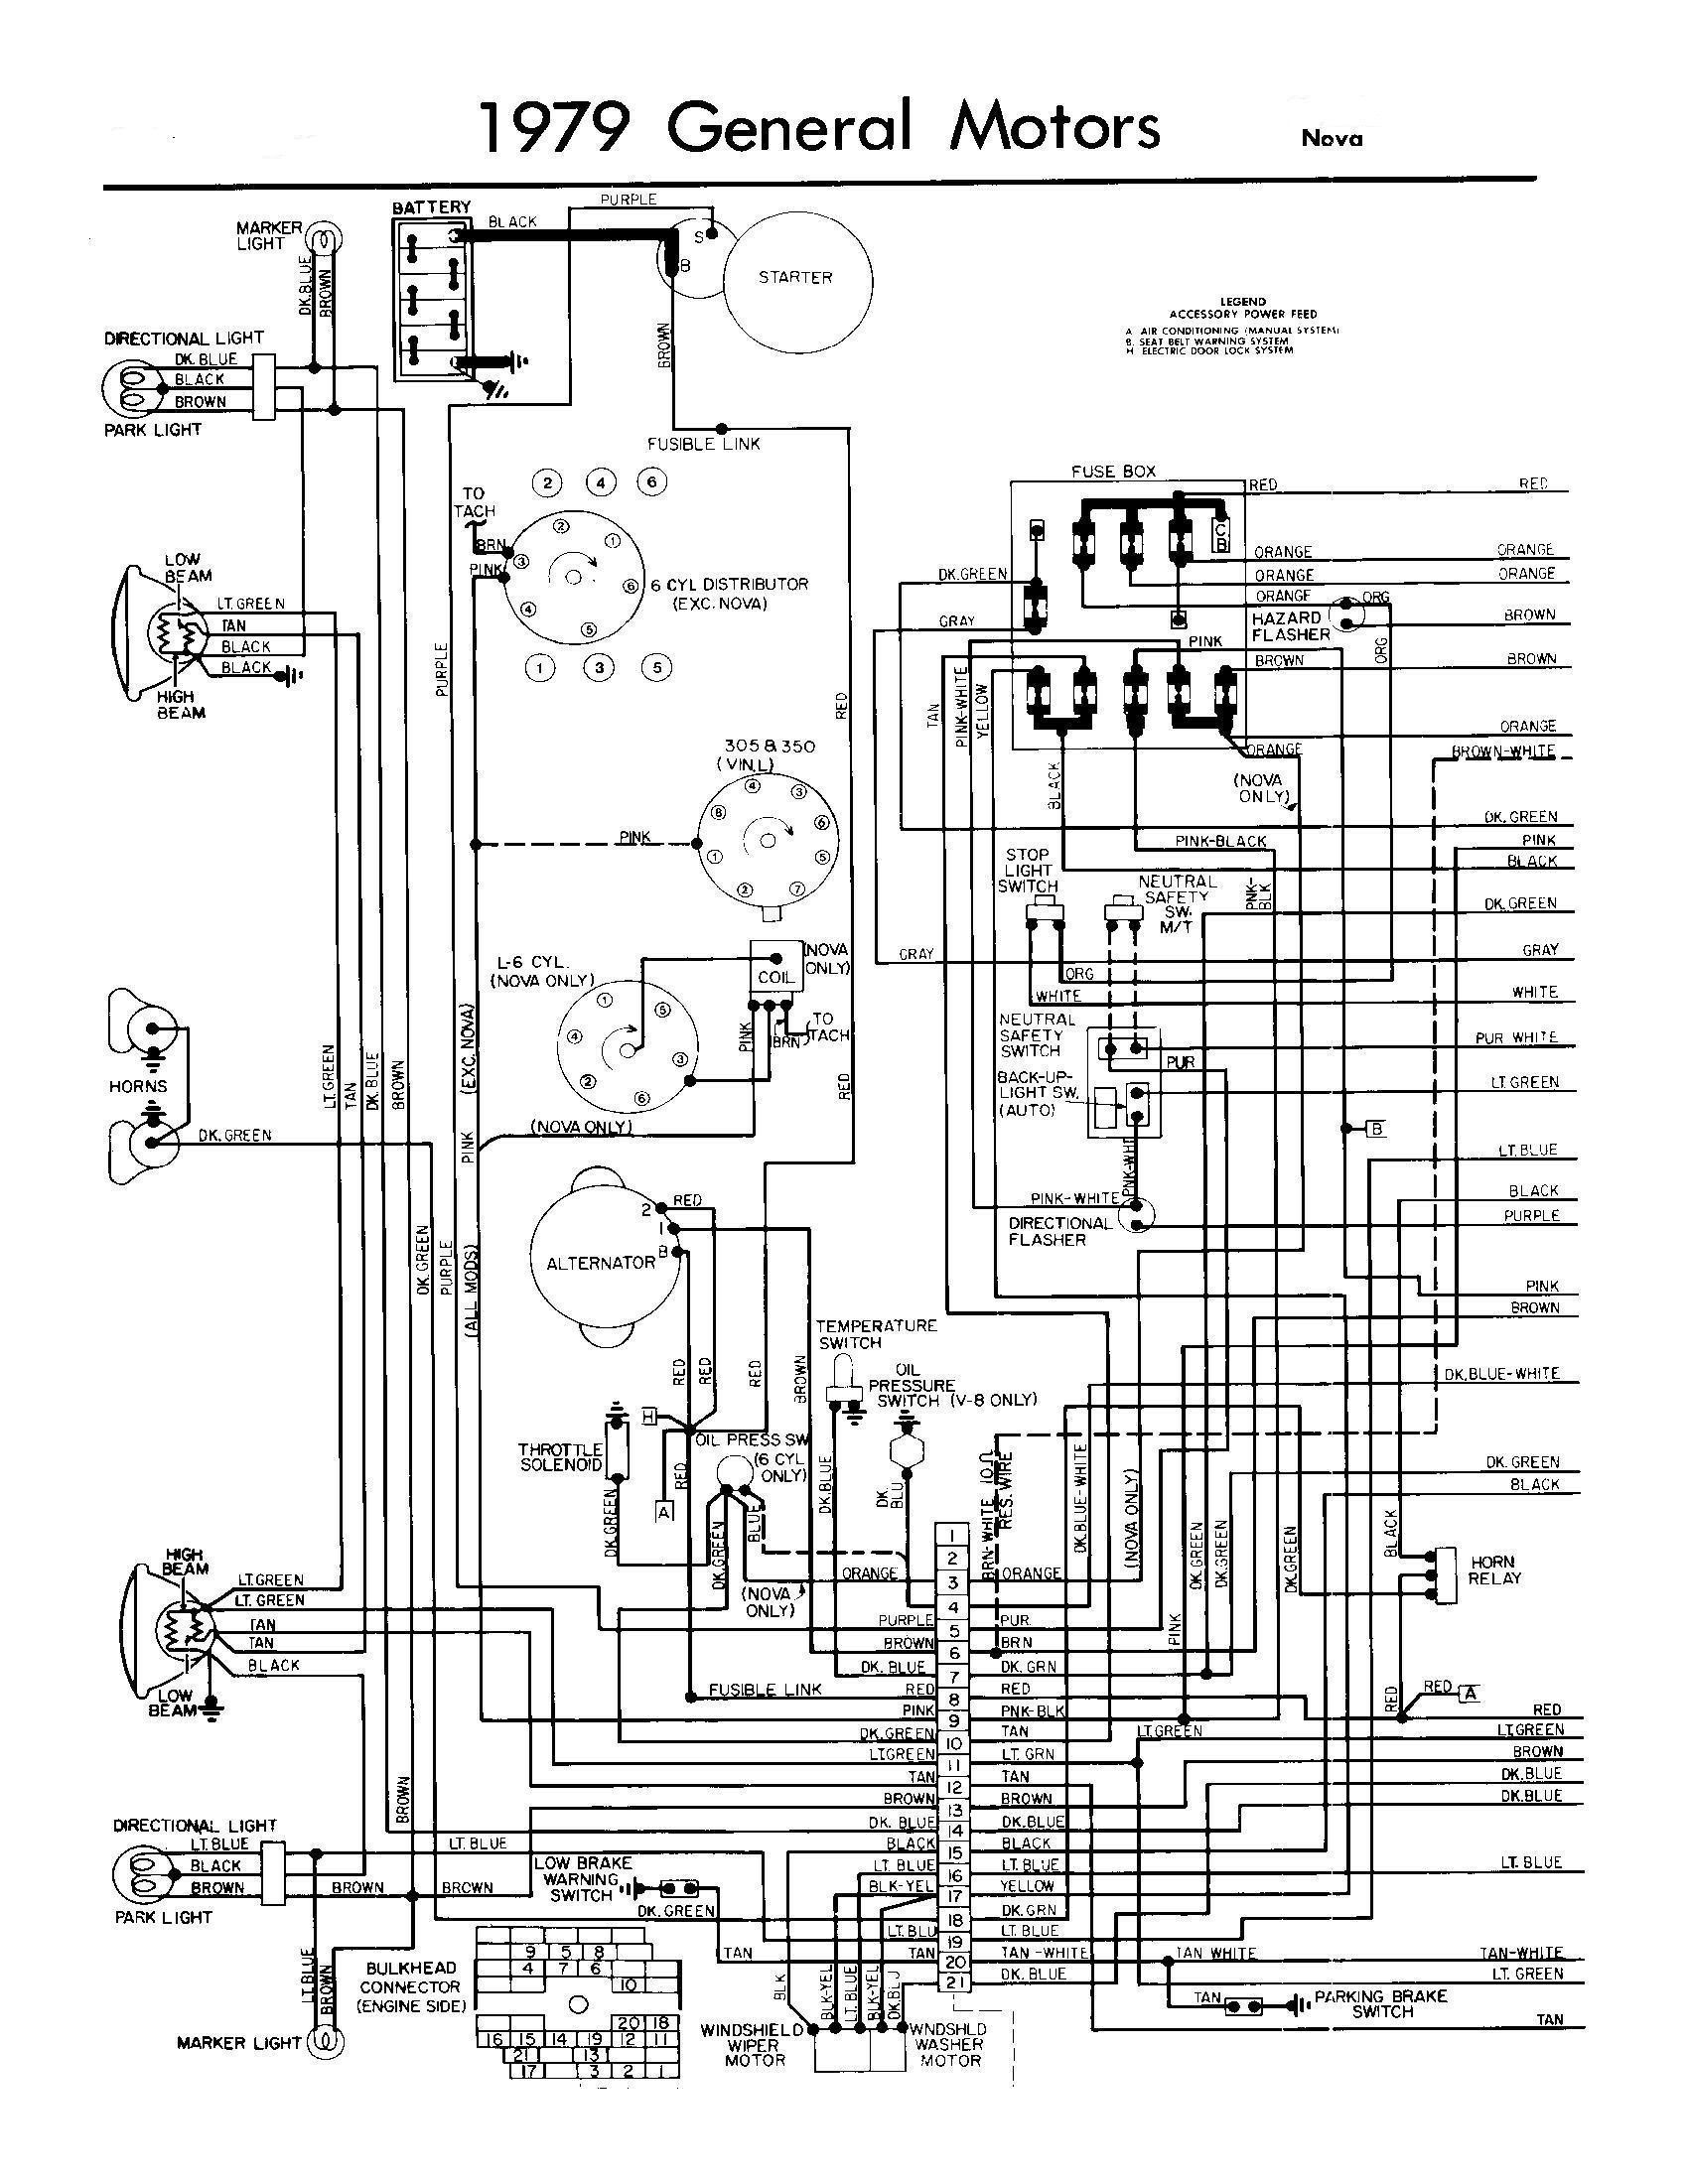 Lincoln 100sg Wiring Diagram Manual E Books Weld Pak 100 1979 Database1979 Alternator Data Today 1954